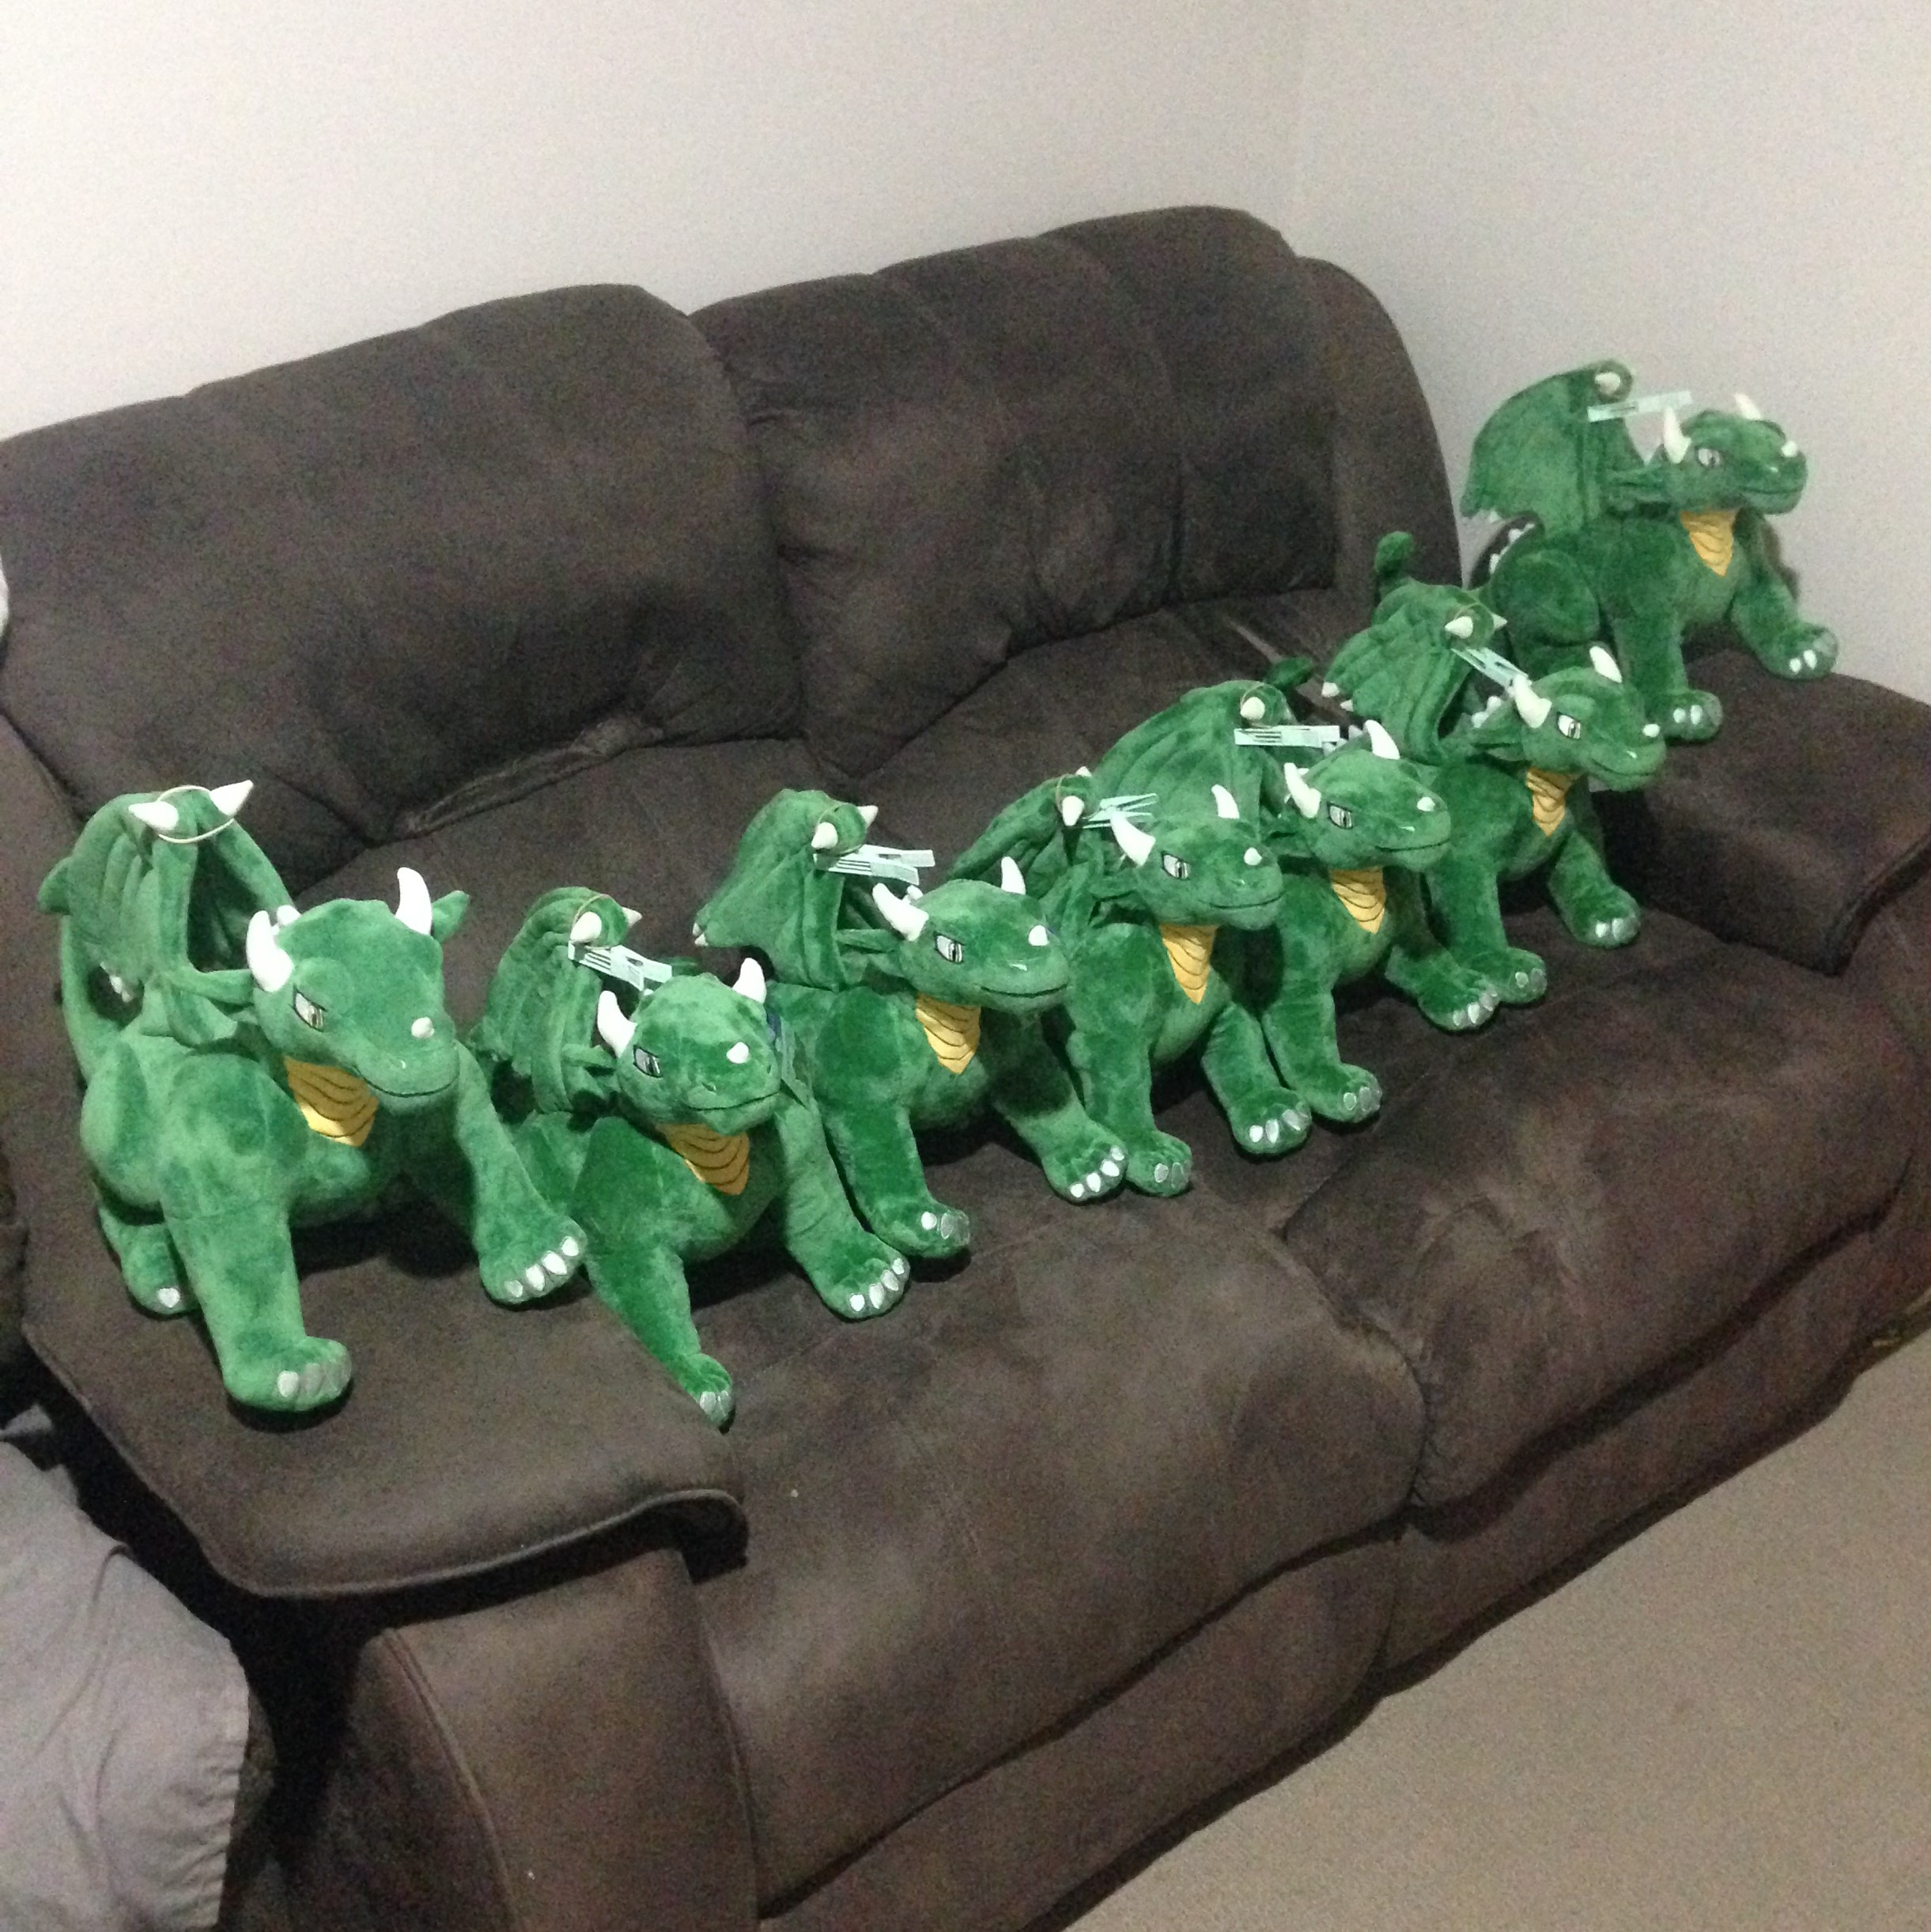 All these dragons in a row square